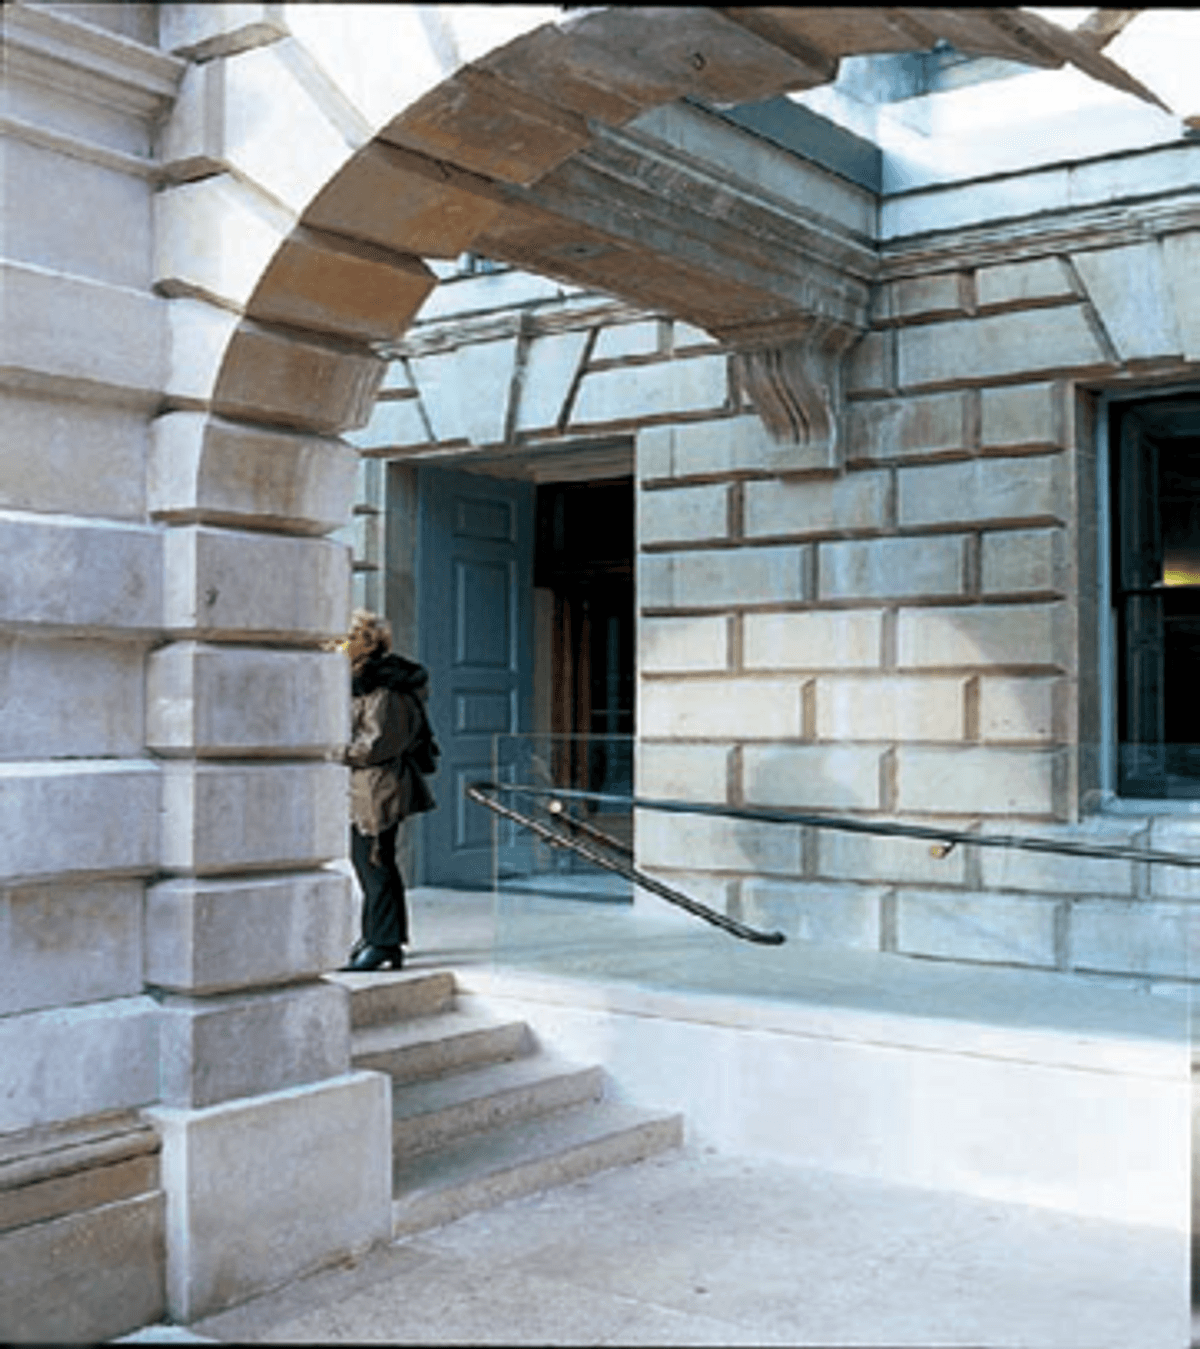 Image of a Permanent Ramp (Steeper Gradient) in a listed building.